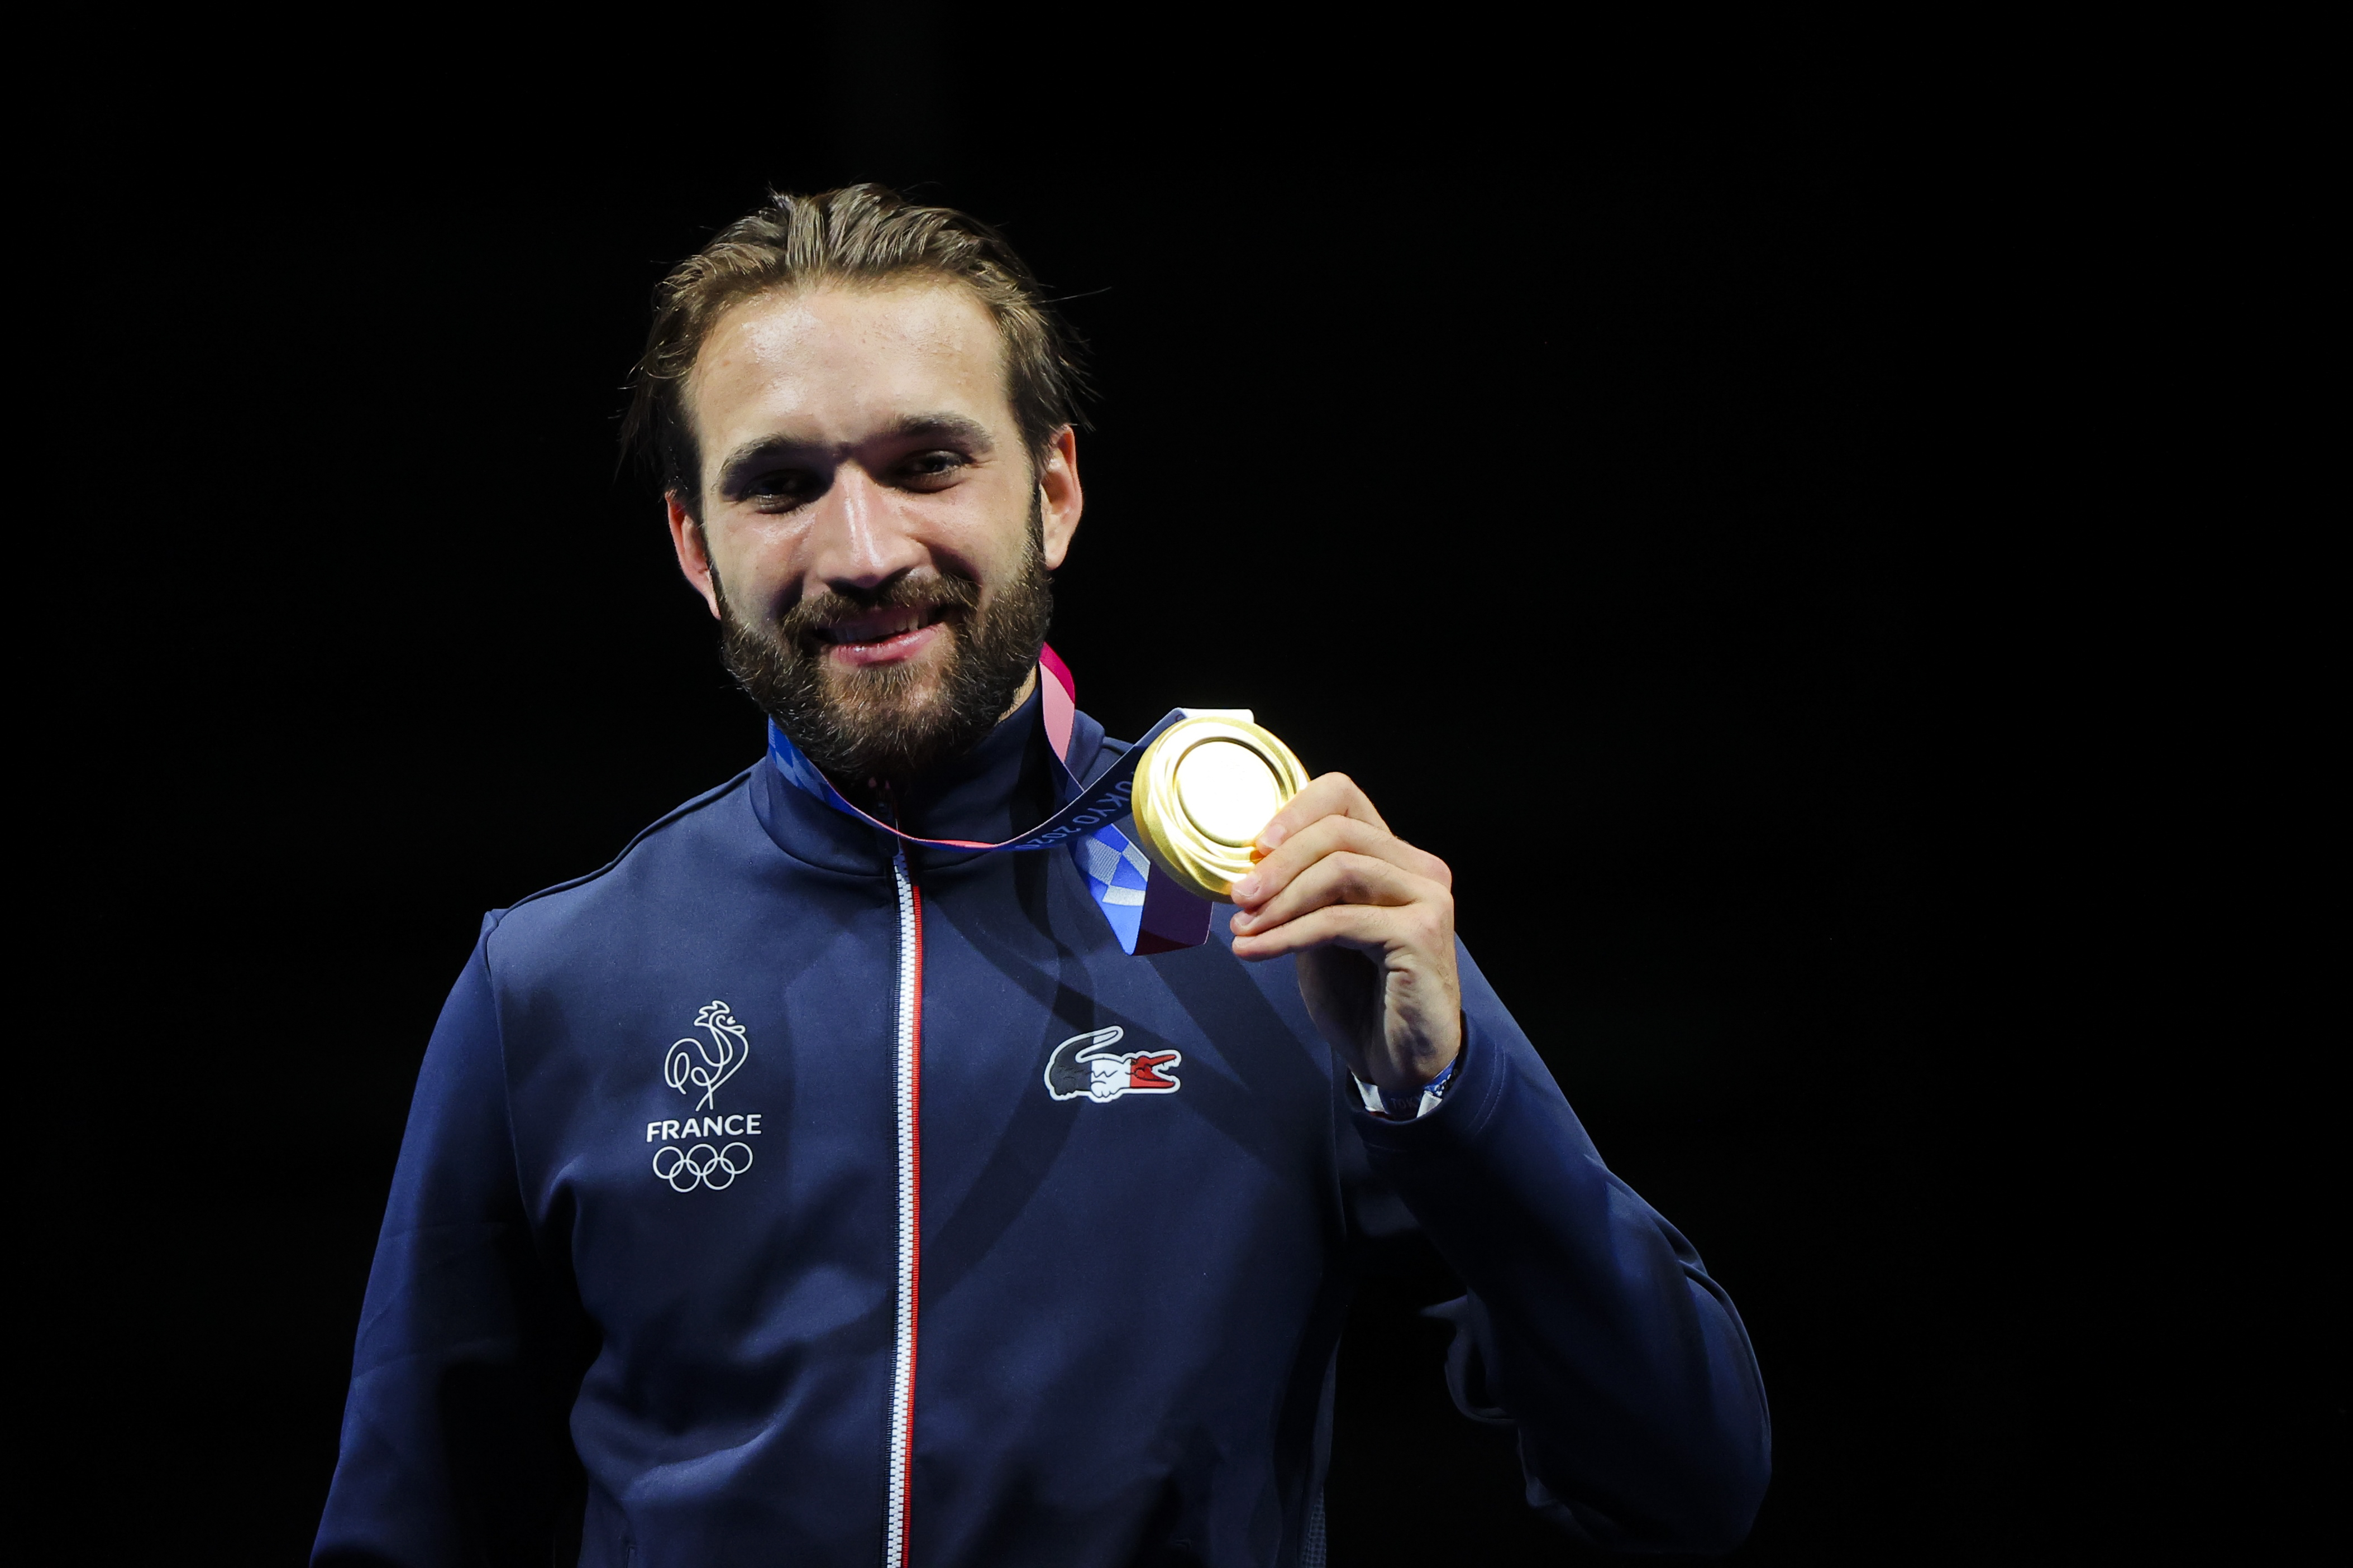 Tokyo 2020 Olympics - Fencing - Men's Individual Epee - Medal Ceremony - Makuhari Messe Hall B - Chiba, Japan - July 25, 2021. Gold medallist Romain Cannone of France celebrates on the podium REUTERS/Maxim Shemetov